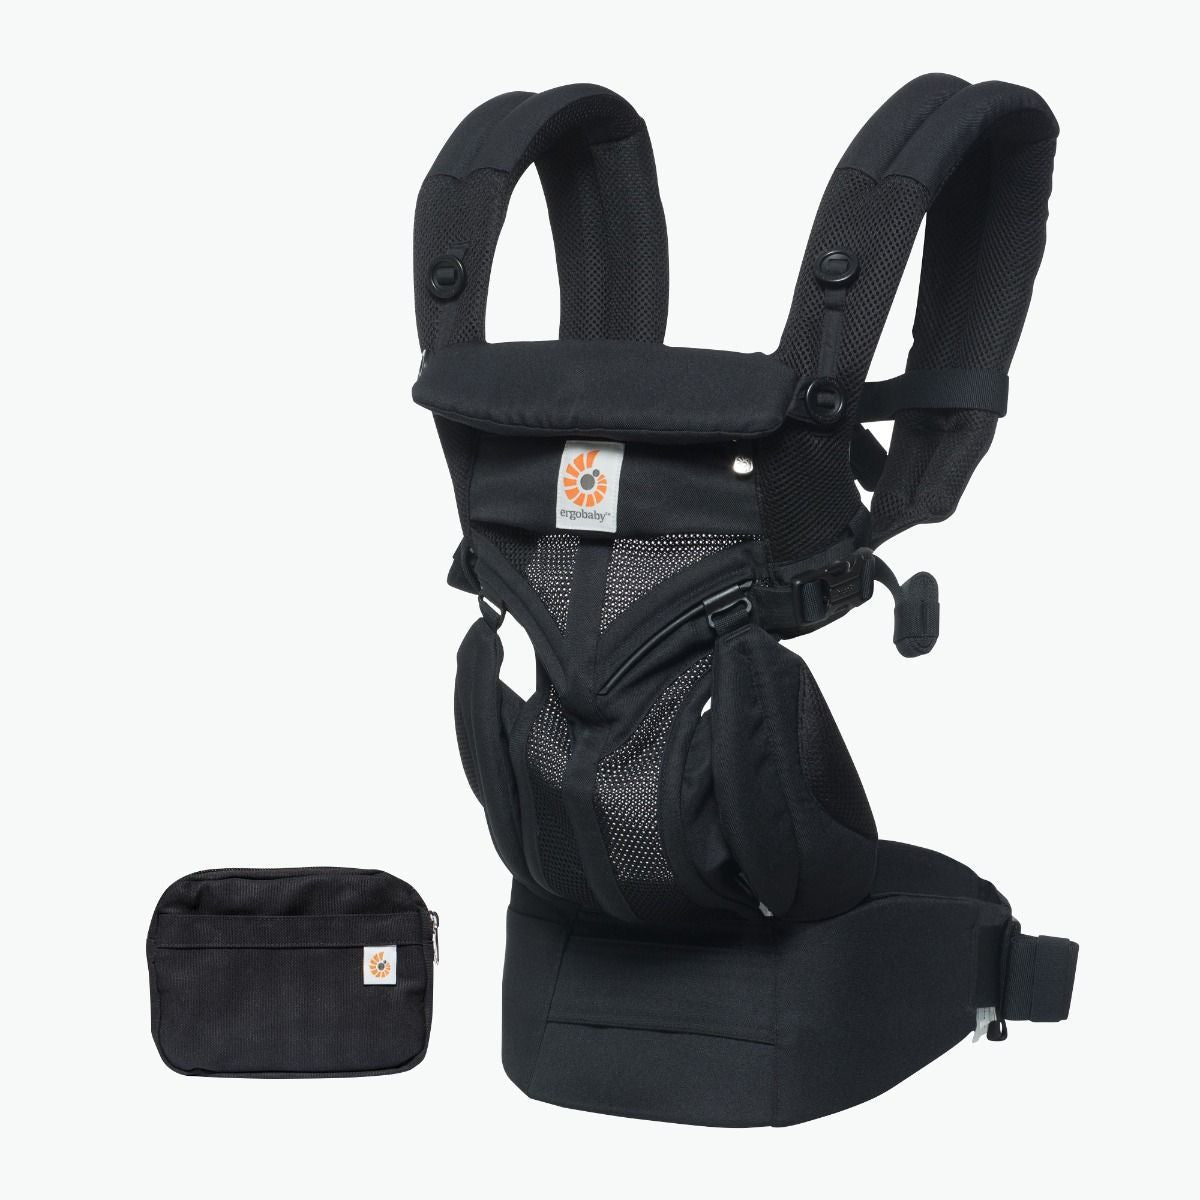 25a827b931f Ergobaby - Omni 360 Baby Carrier  Cool Air Mesh-Onyx Black from The Stork  Nest Australia